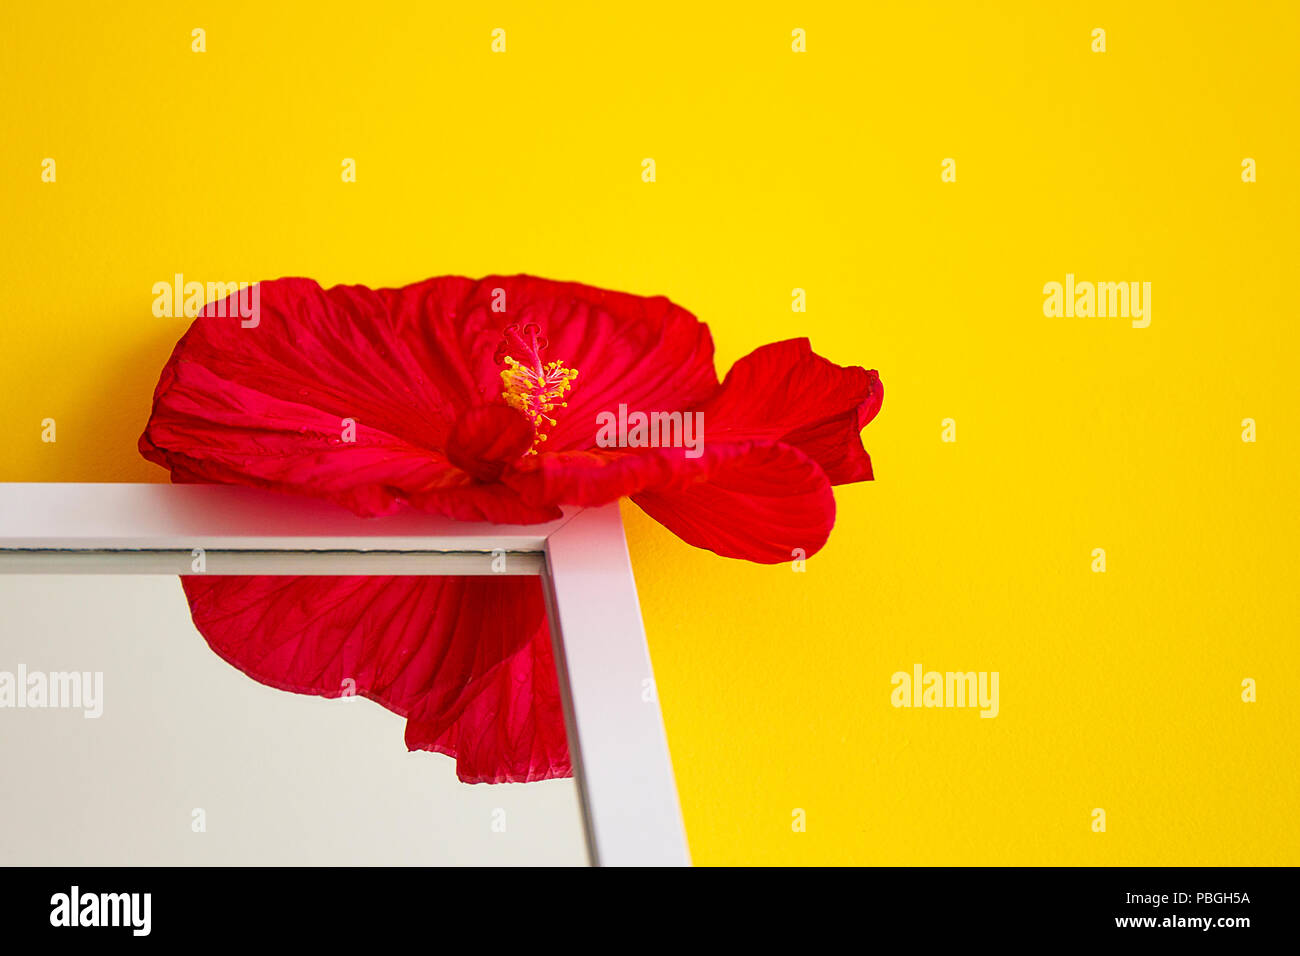 pink hibiscus on yellow background - Stock Image